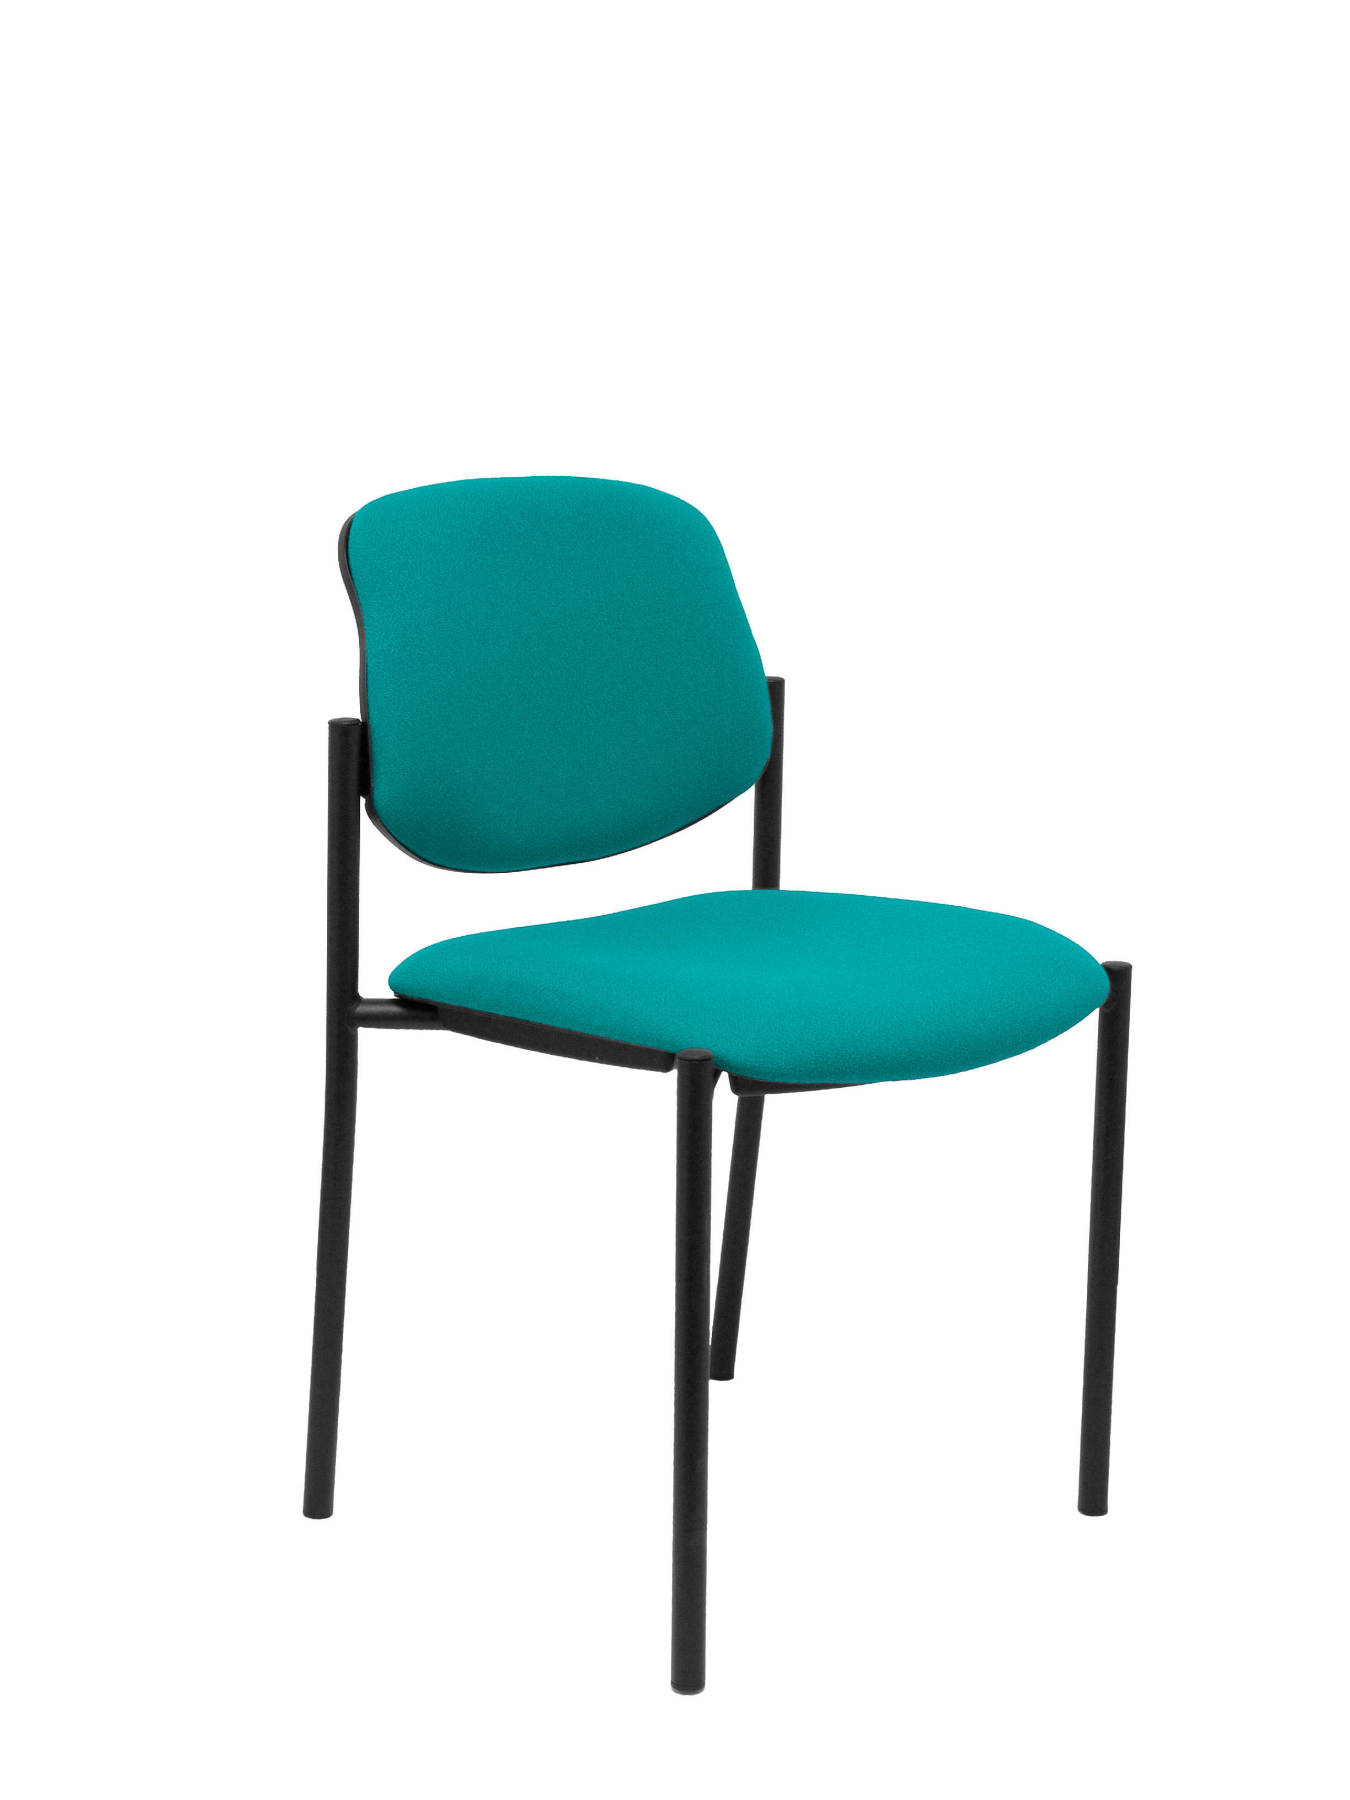 Visitor Chair 4's Topsy And Estructrua Negro-up Seat And Backstop Upholstered In BALI Tissue Green Color TAPHOLE AND CRES